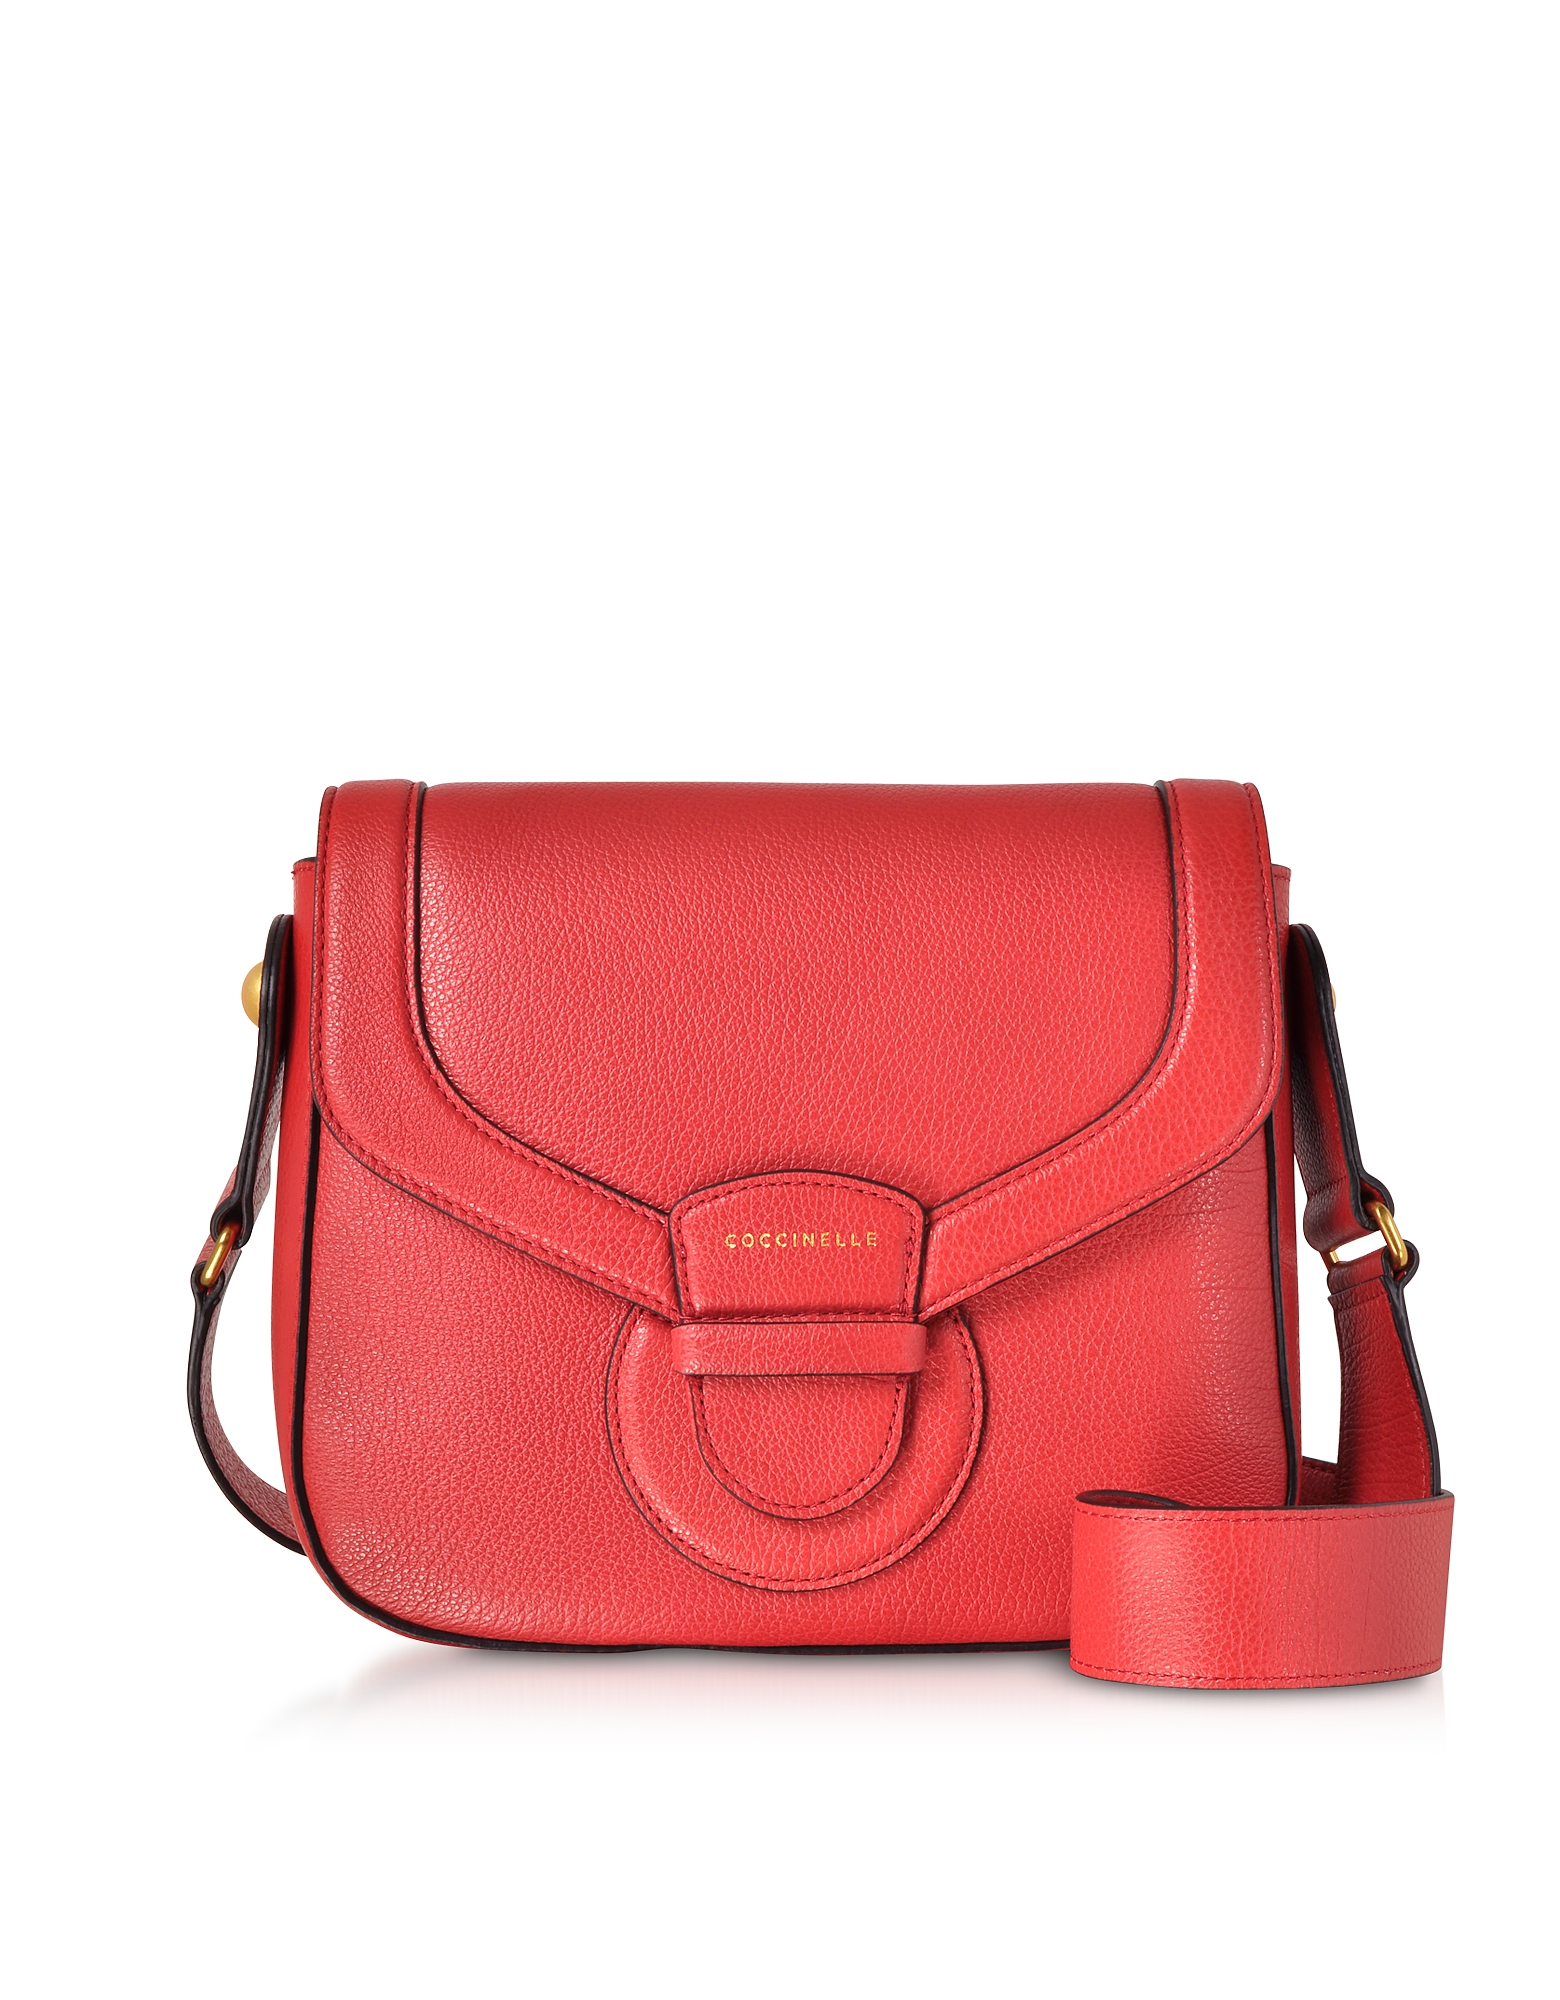 Vega Medium Leather Shoulder Bag